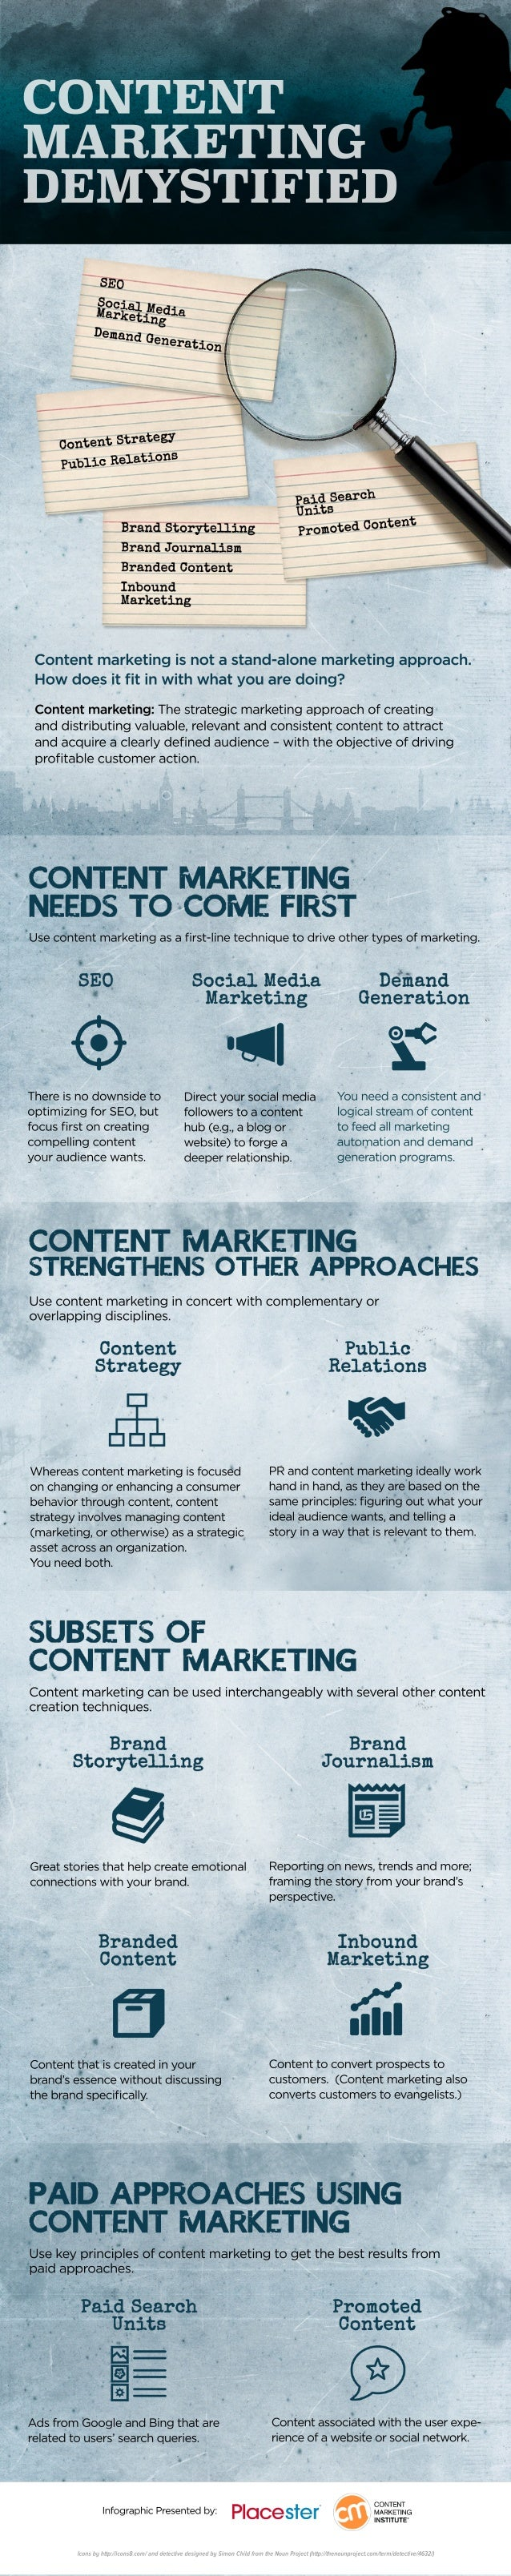 The Demystification of Content Marketing Infographic